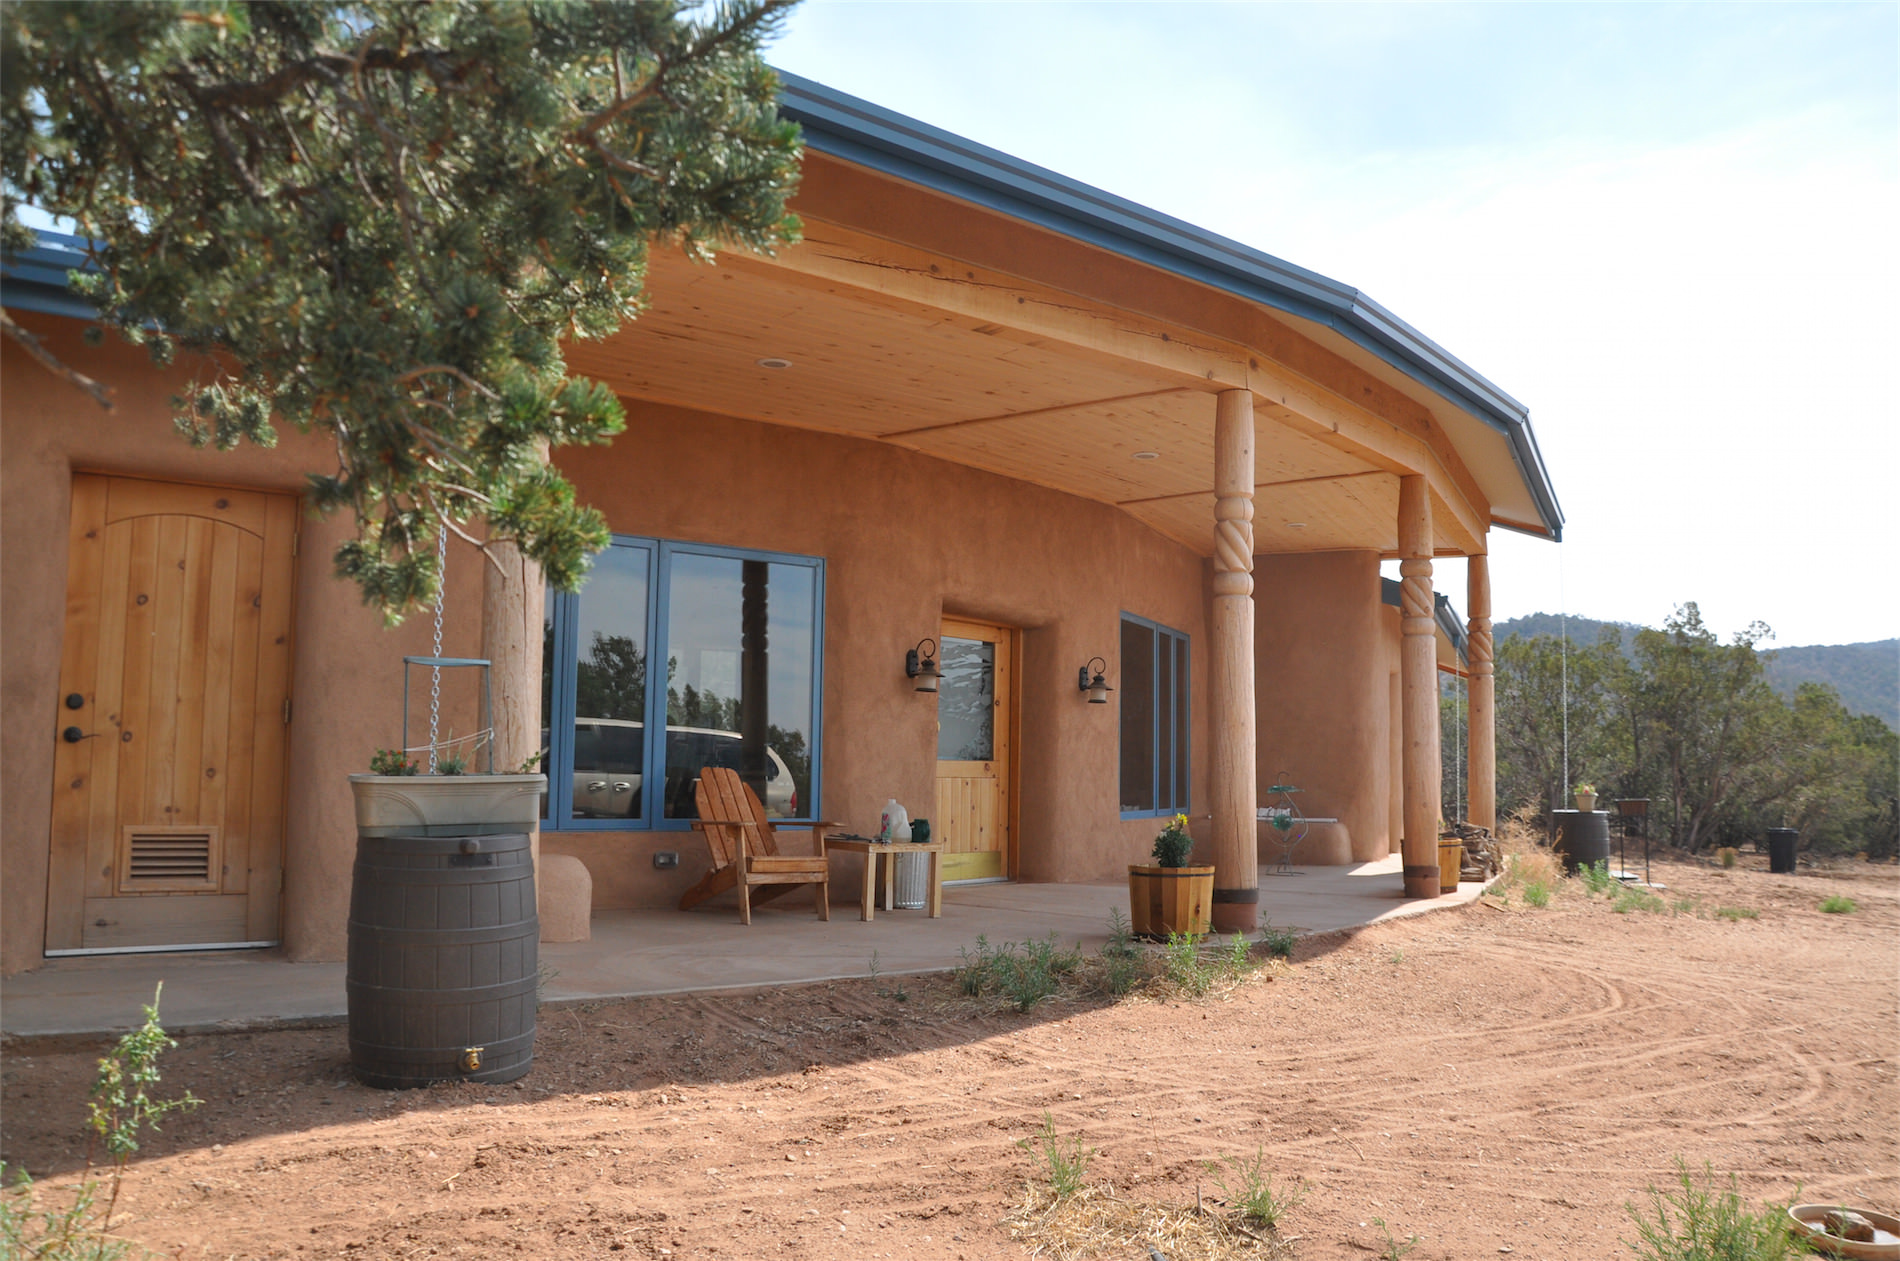 Best Kitchen Gallery: The Off Grid Home That's Fire Retardant Inexpensive 75 More of Cheap Energy Efficient Home Construction on rachelxblog.com